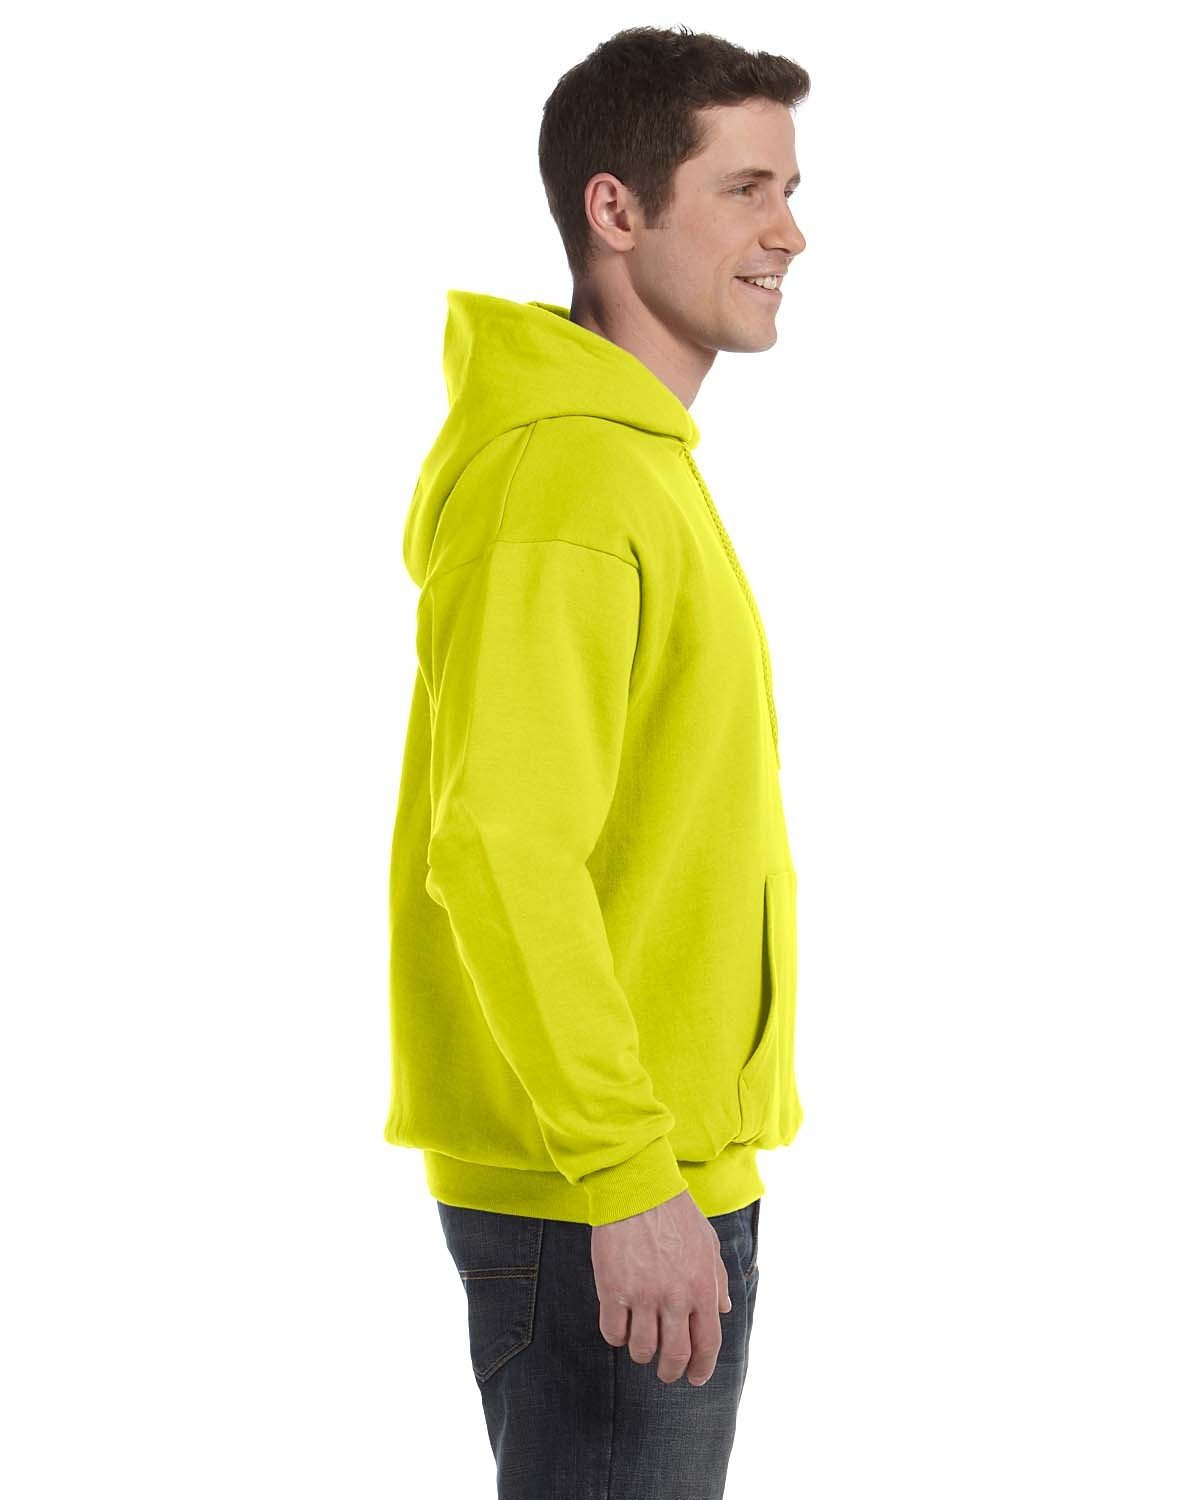 P170 Hanes SAFETY GREEN